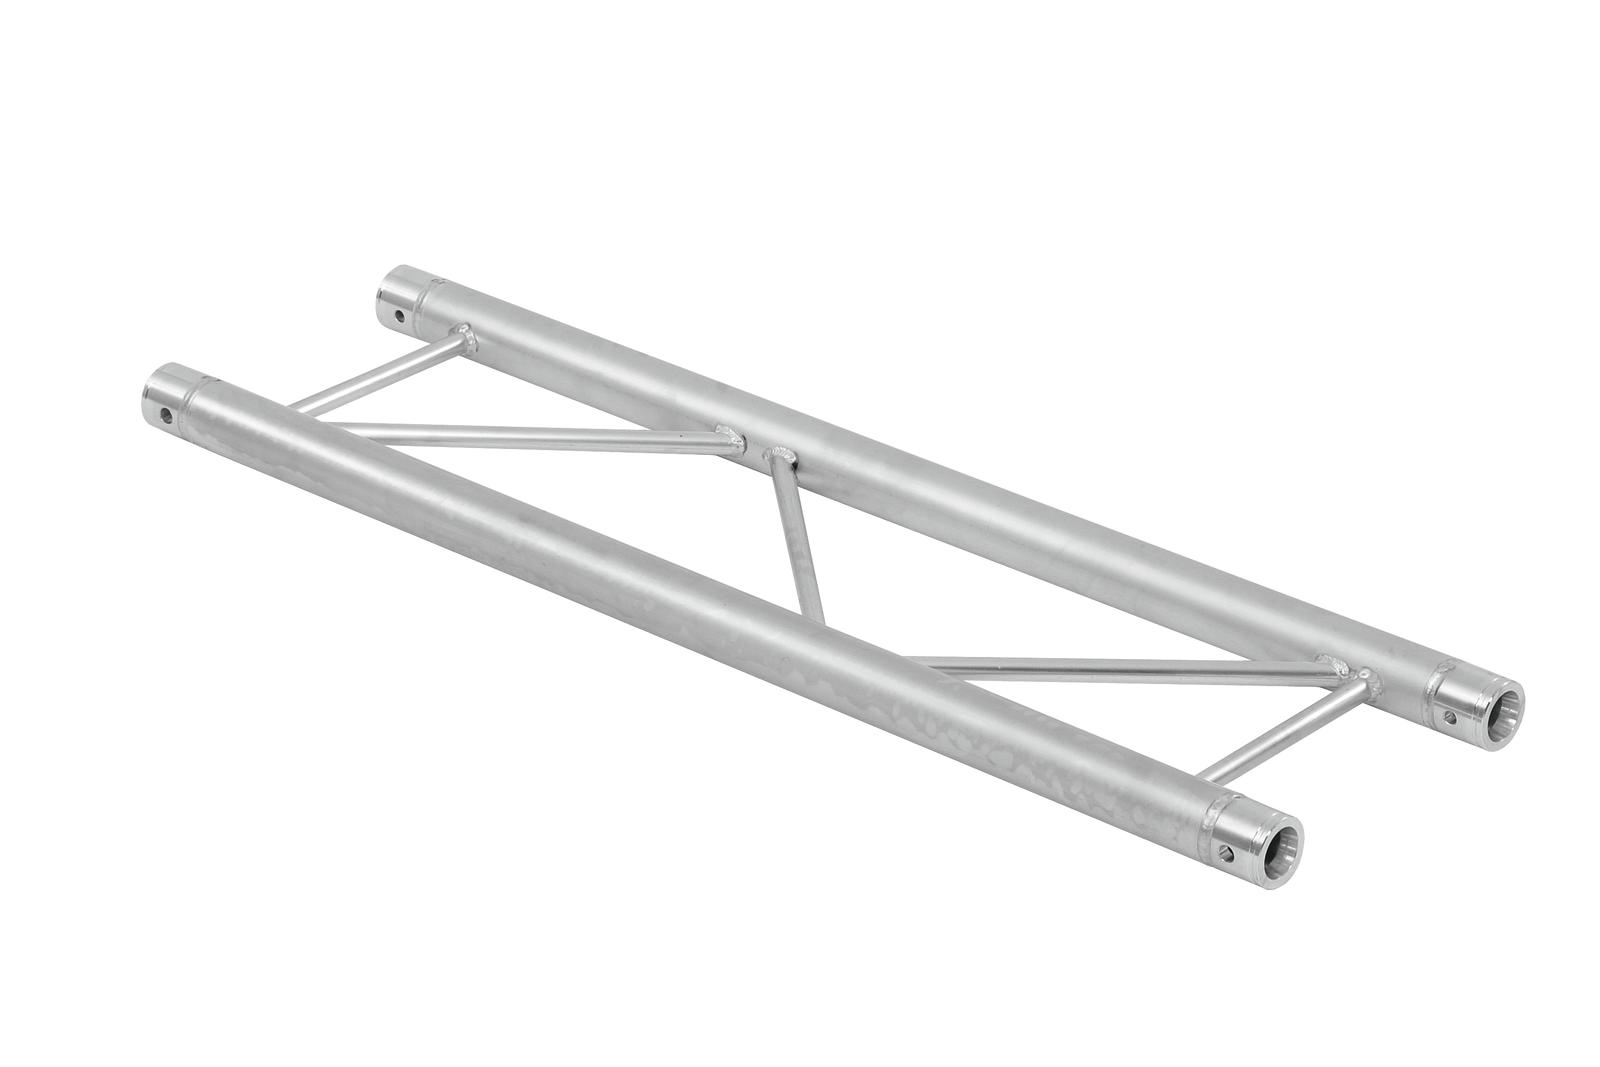 ALUTRUSS BILOCK E-GL22 2000 a 2 vie traverse